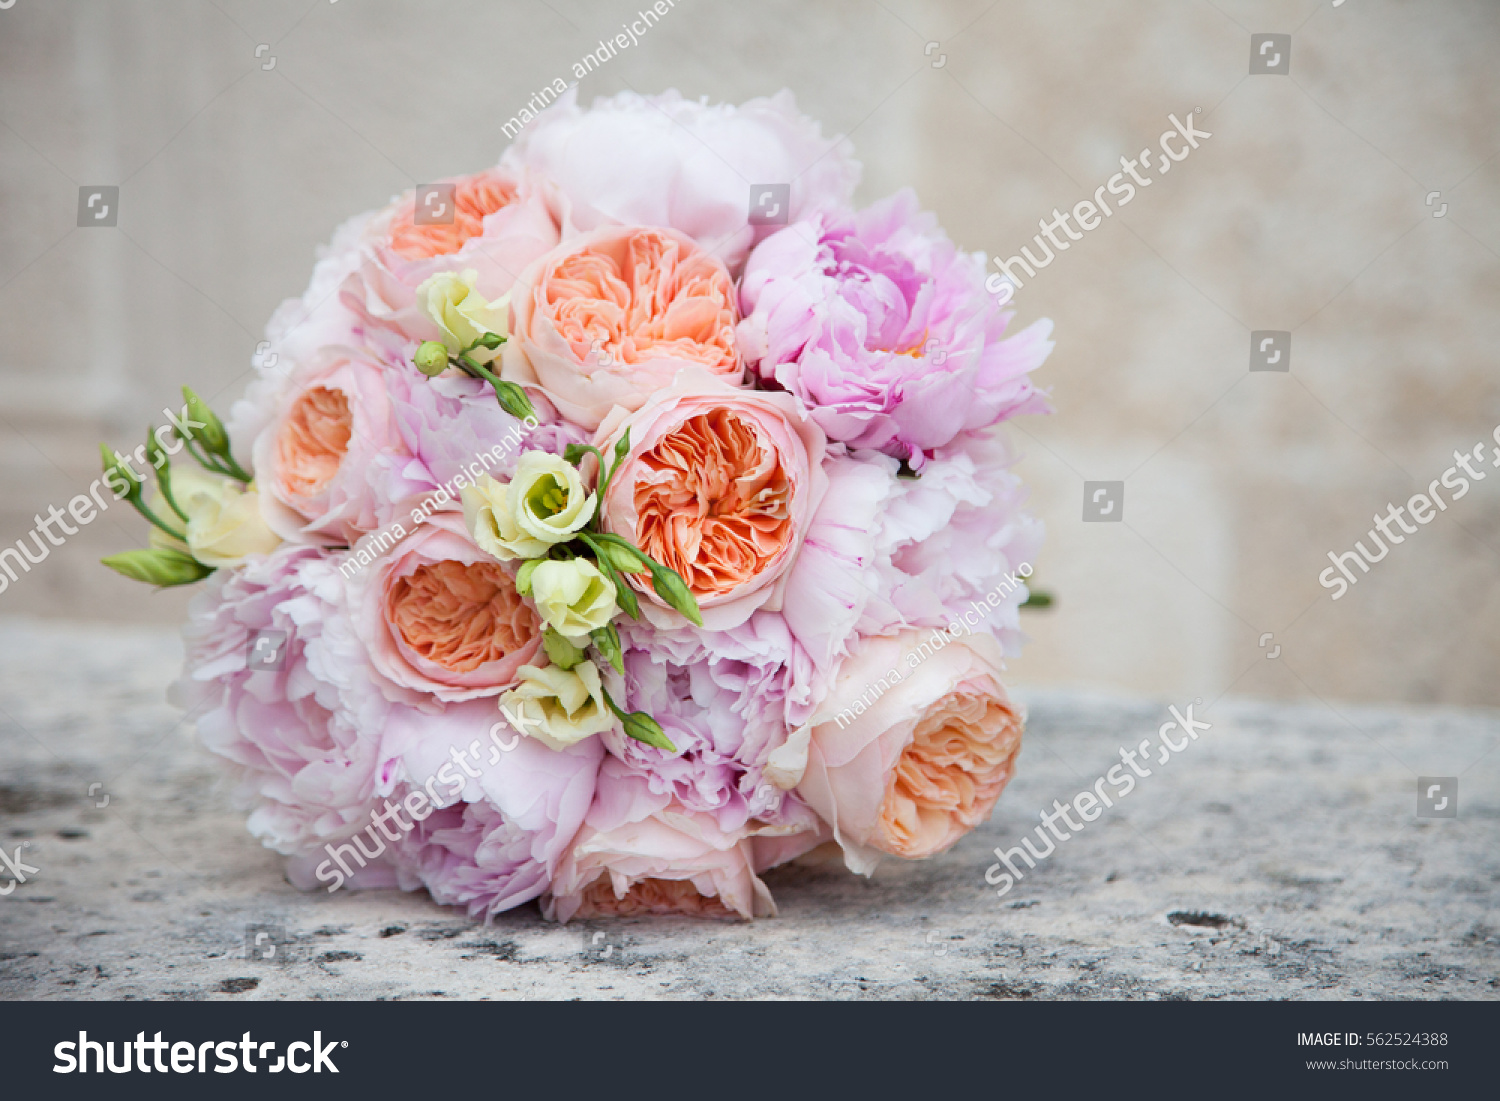 Wedding Bouquet From Orange Roses Pink Peonies And Cream Flowers